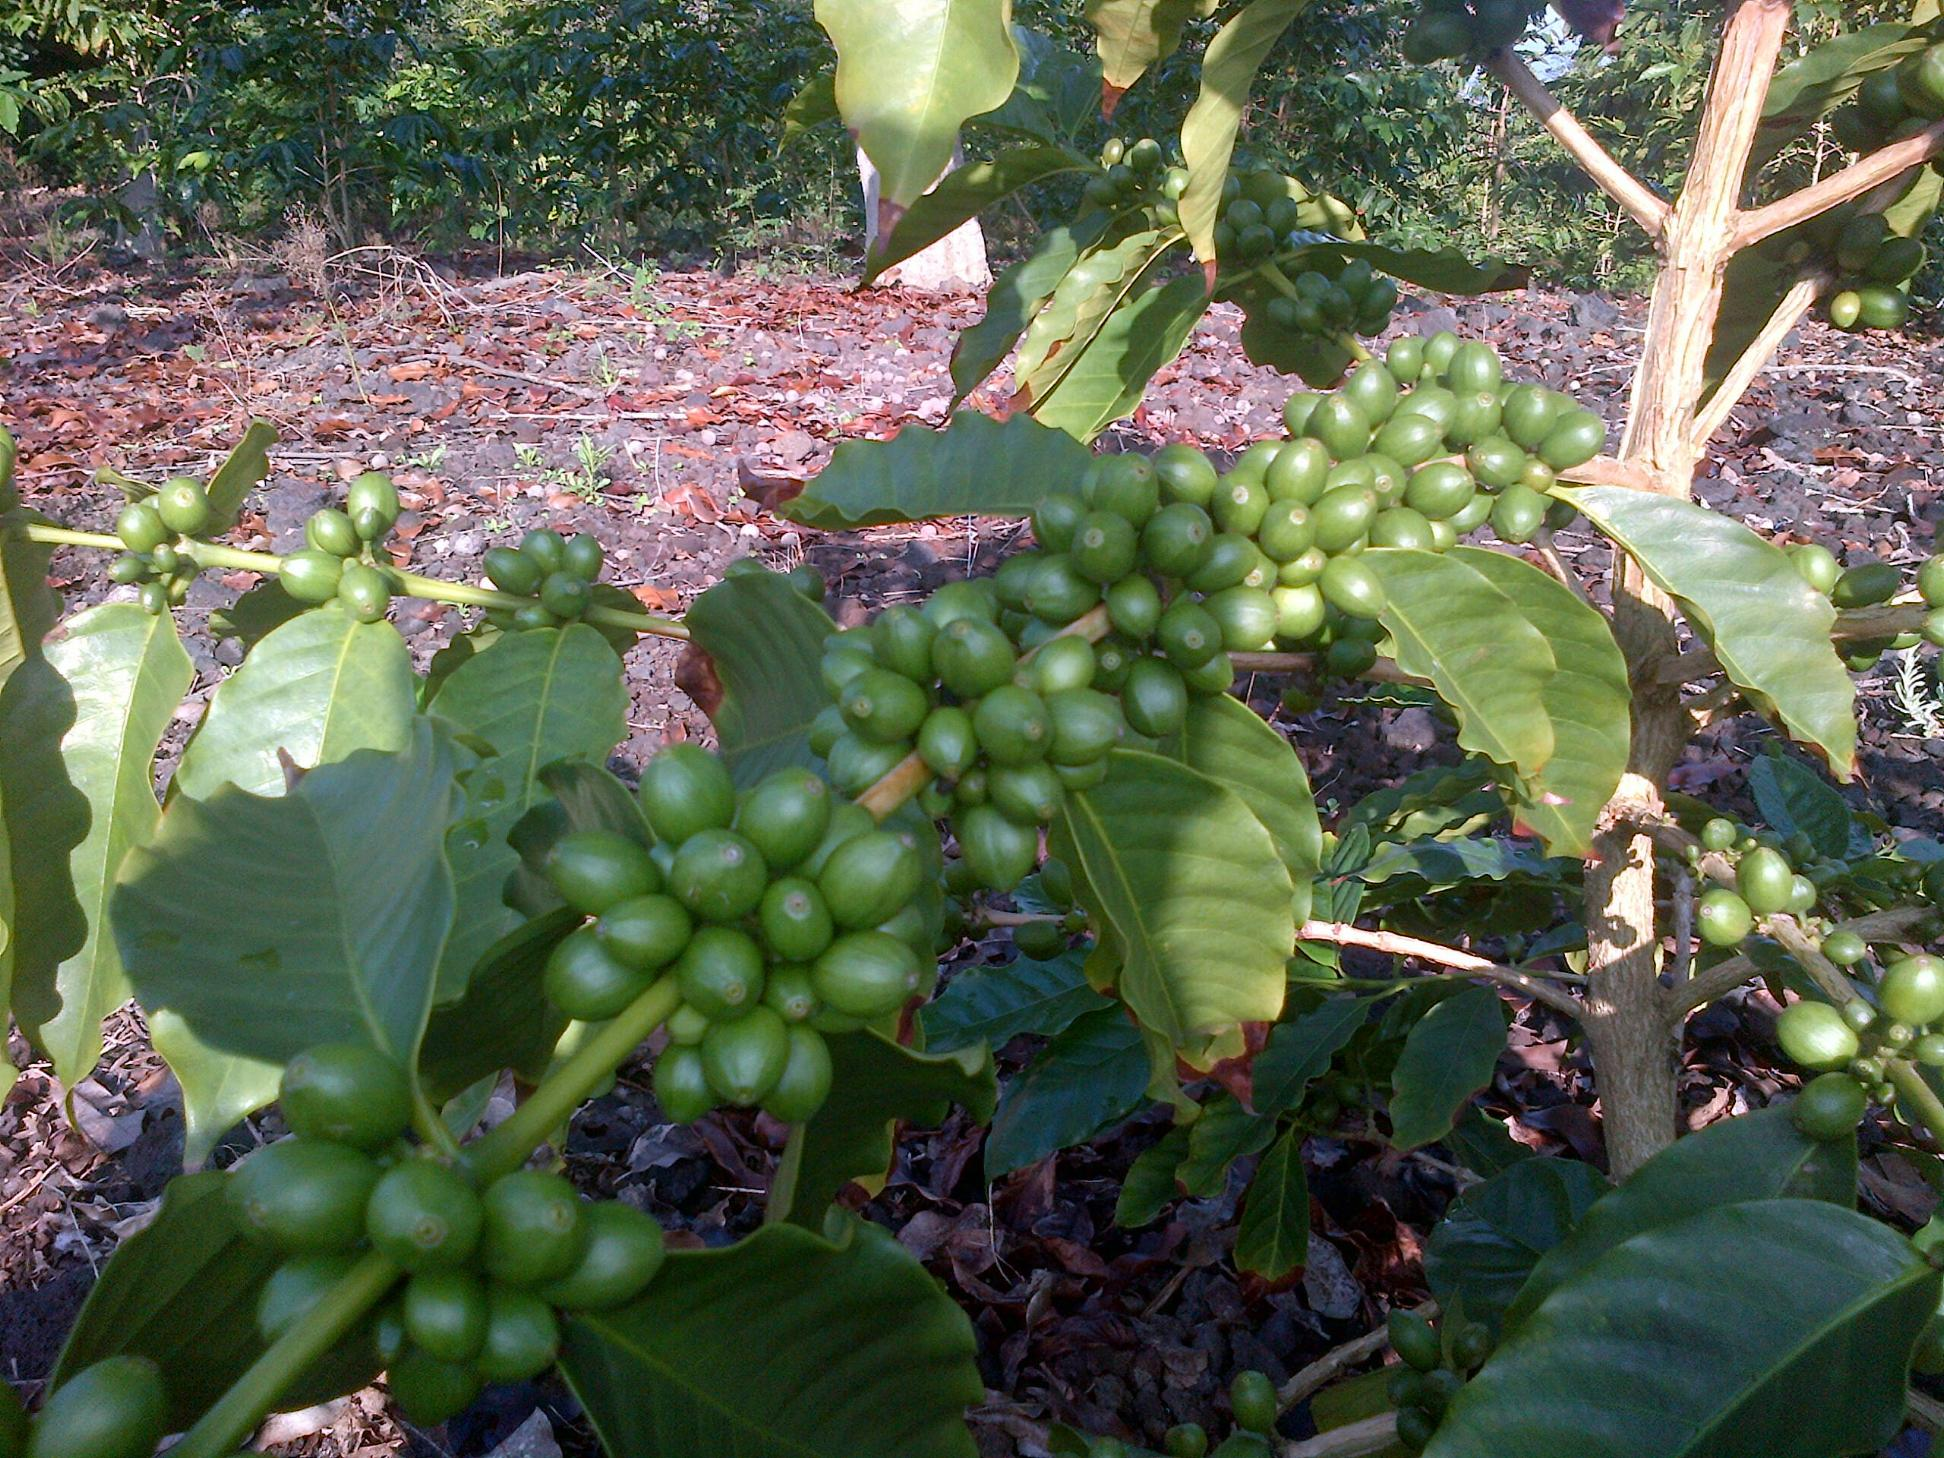 Coffee fruits growing until they ripen (turn red).